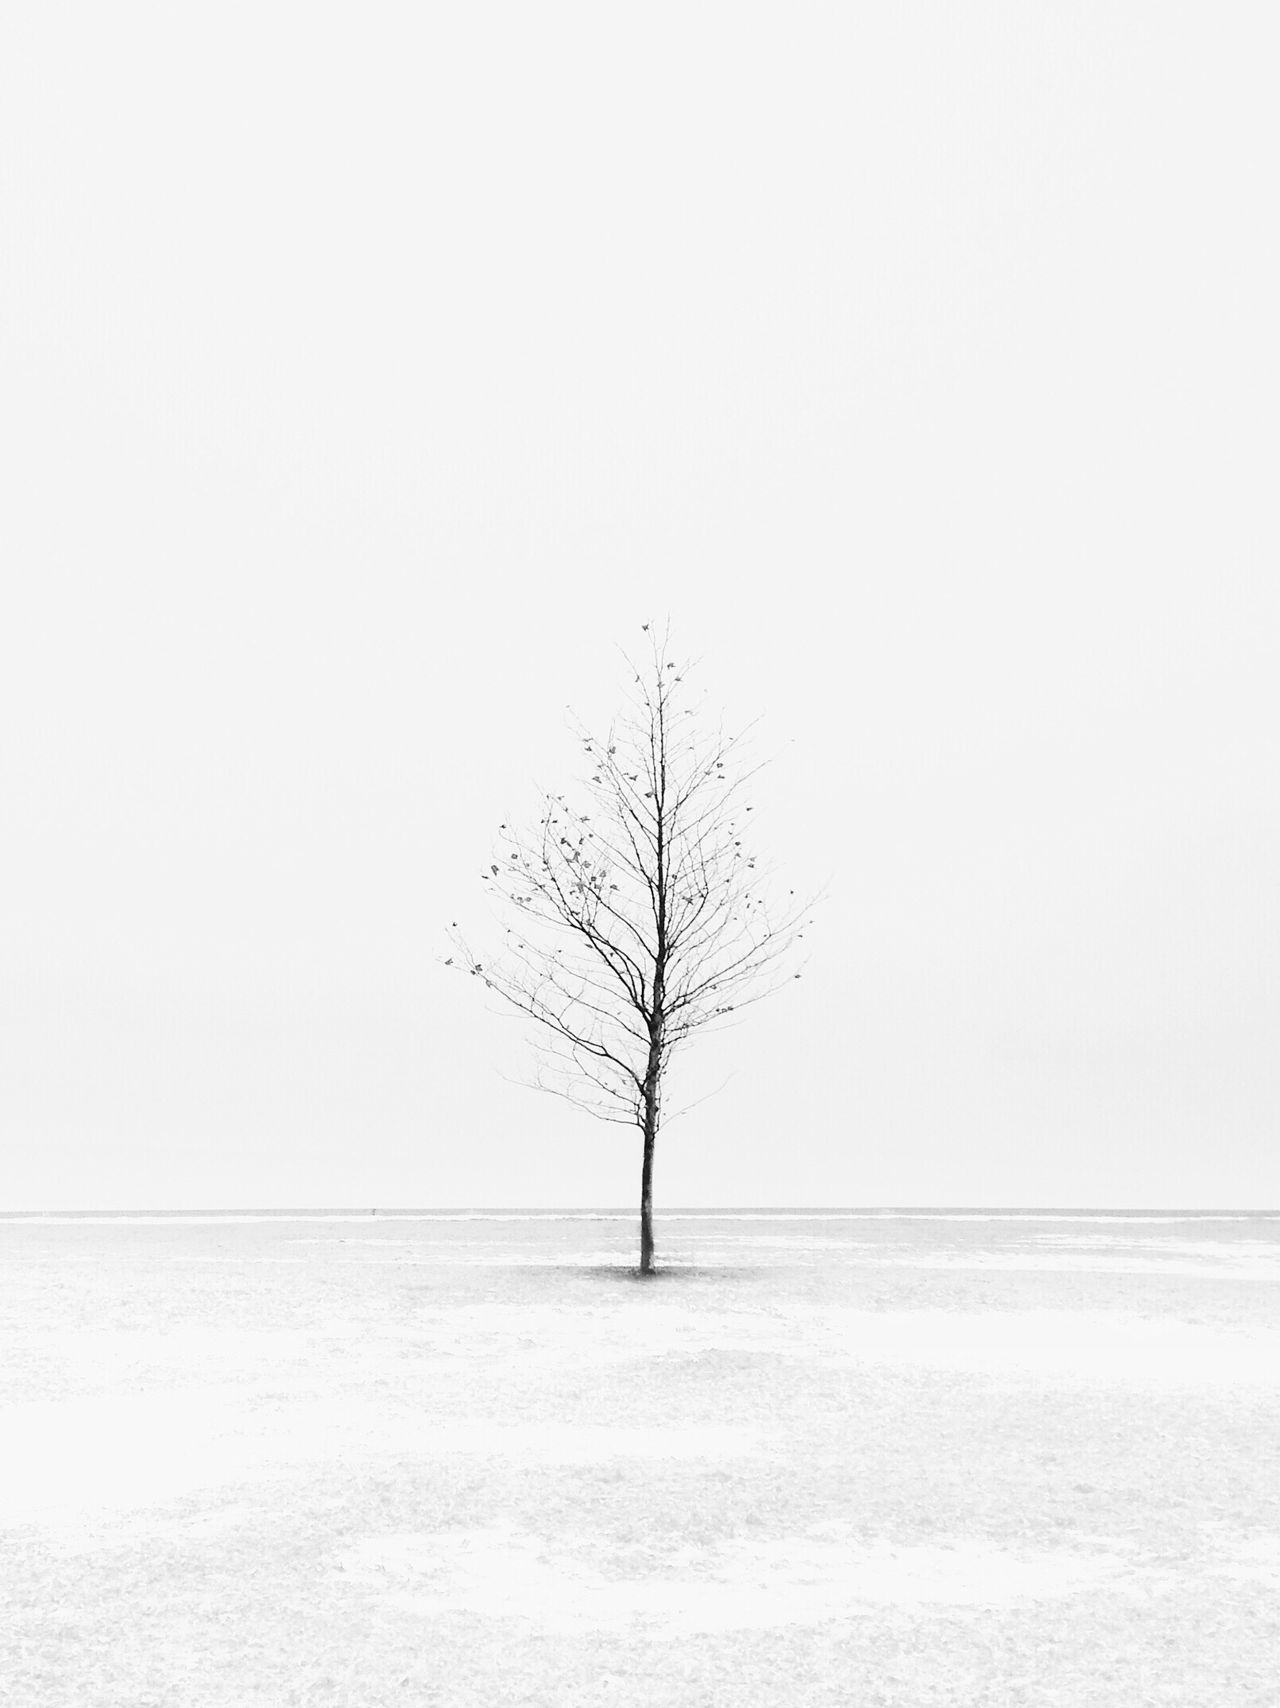 Nature Lone Tranquility Tranquil Scene Clear Sky Bare Tree Isolated Beauty In Nature Tree Scenics Landscape No People Branch Outdoors Day Sky Single Tree